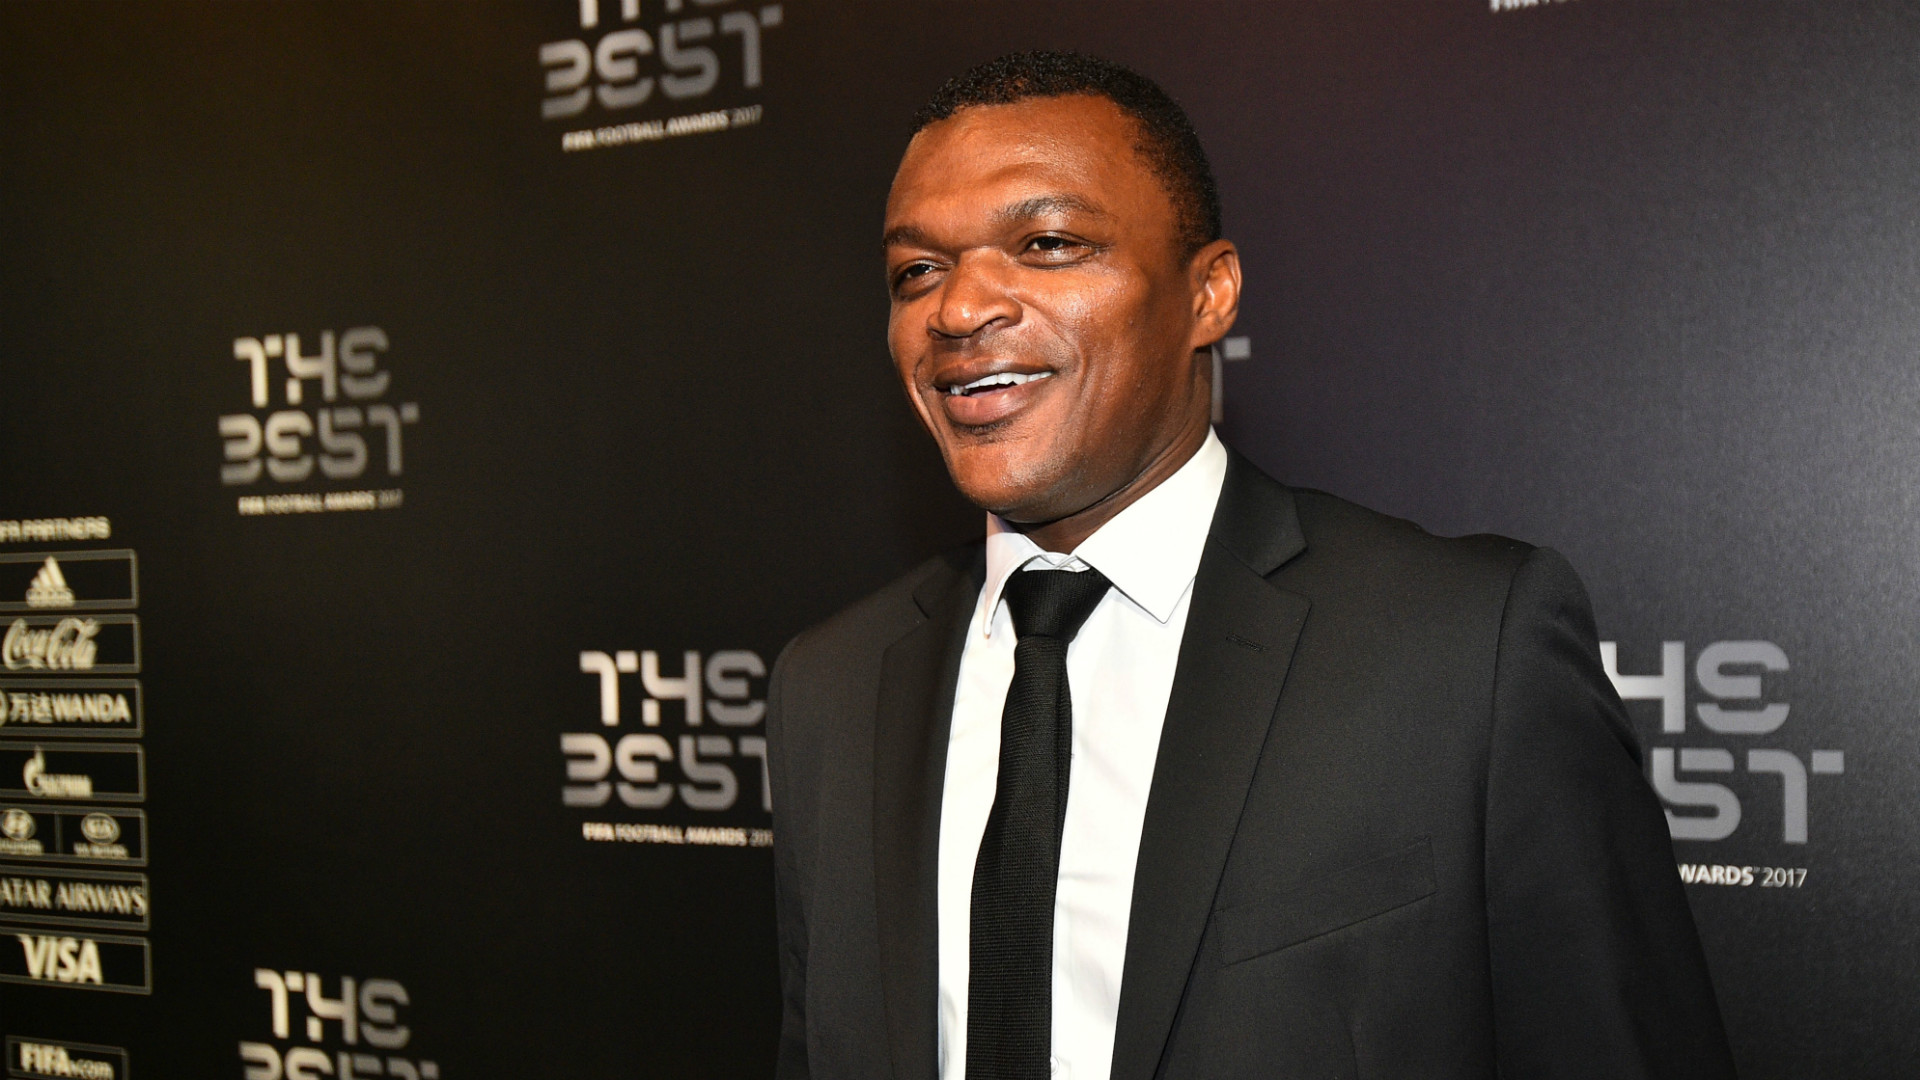 Desailly: Playing for Ghana was not an option for France legend